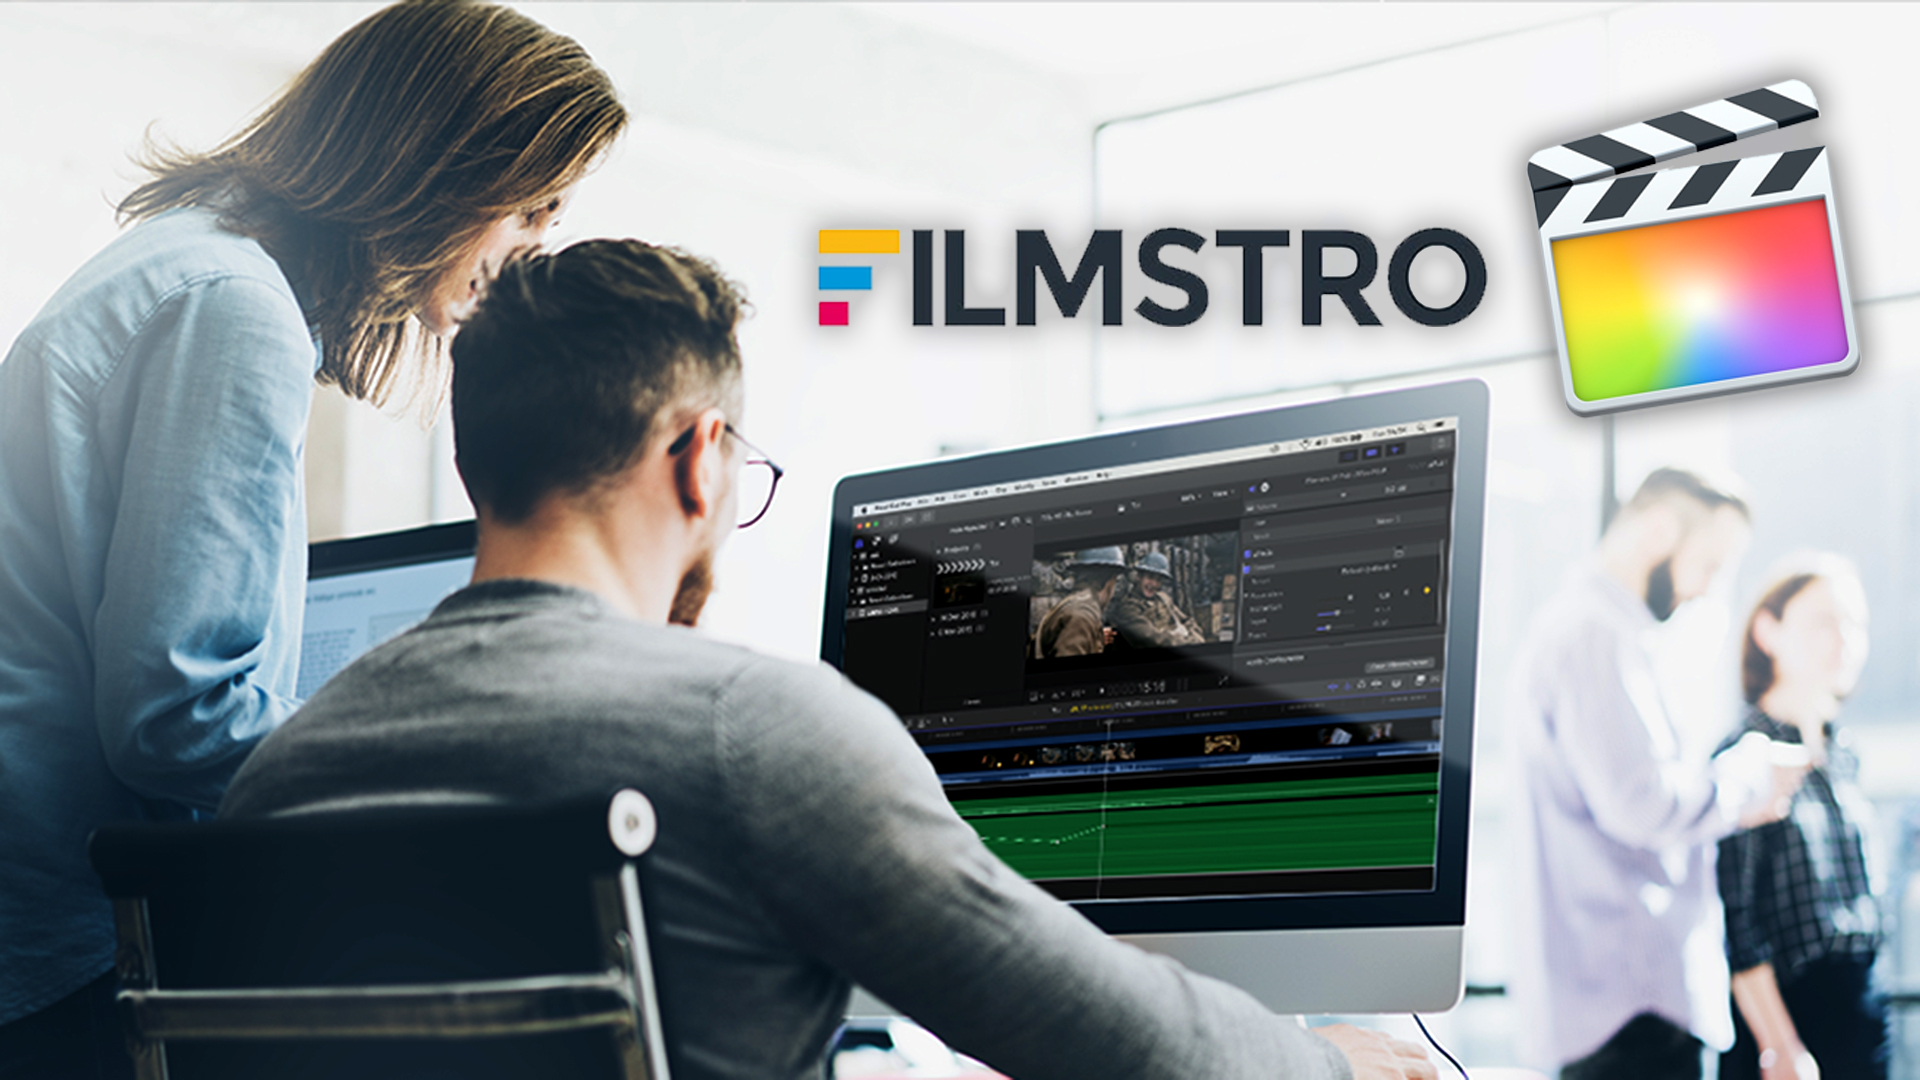 Filmstro Launches Dedicated Final Cut Pro X Plugin | cinema5D